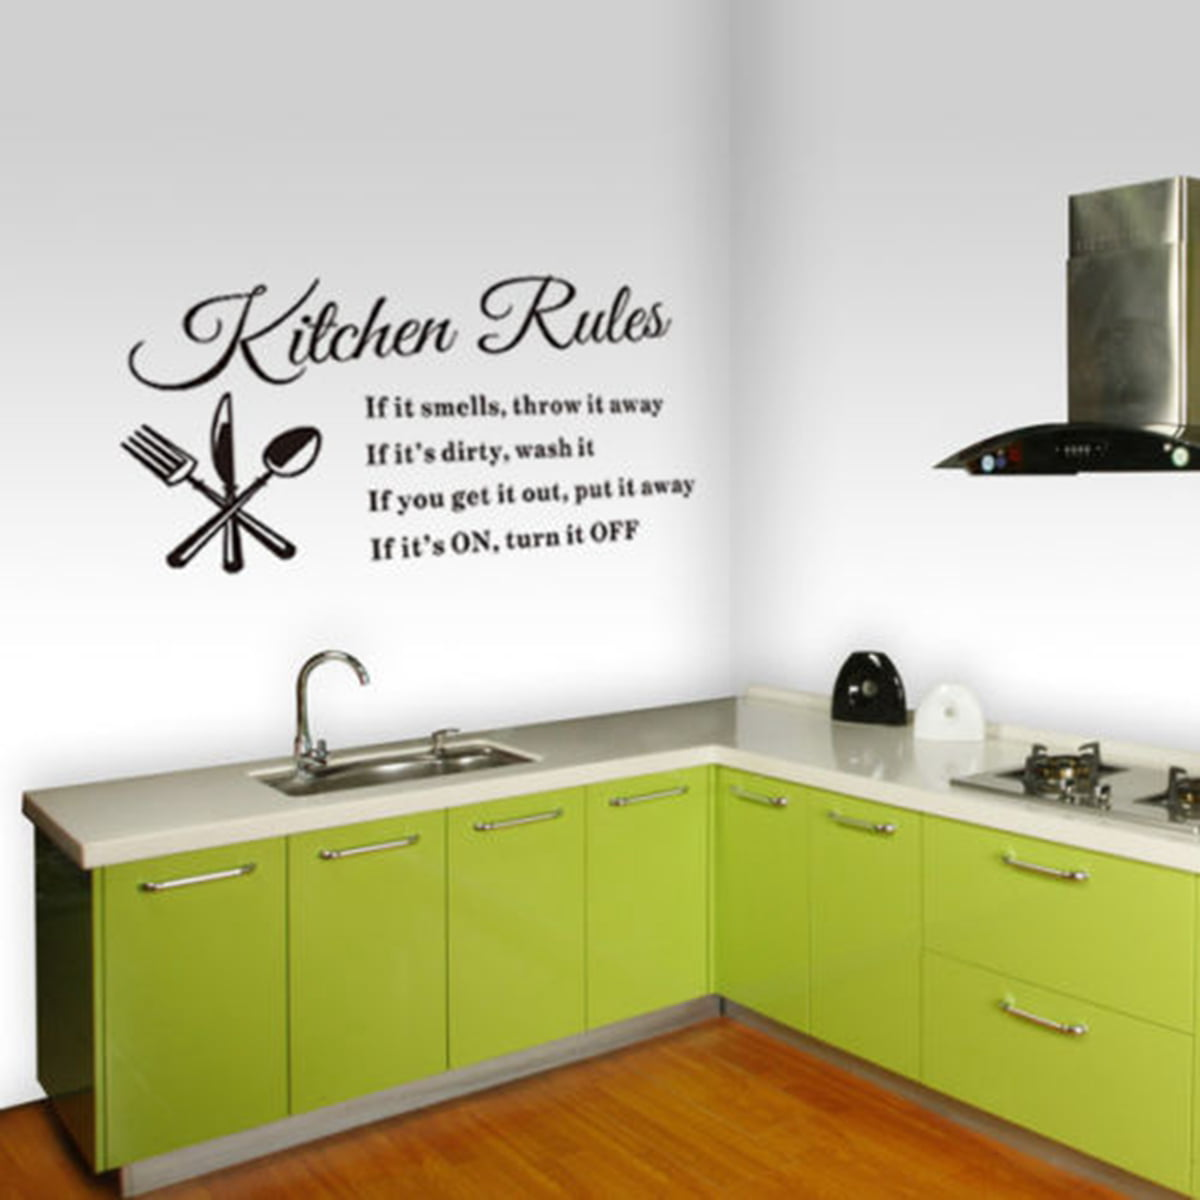 1Pcs Removable Kitchen Rules Words Wall Stickers Decal Home Decor ...